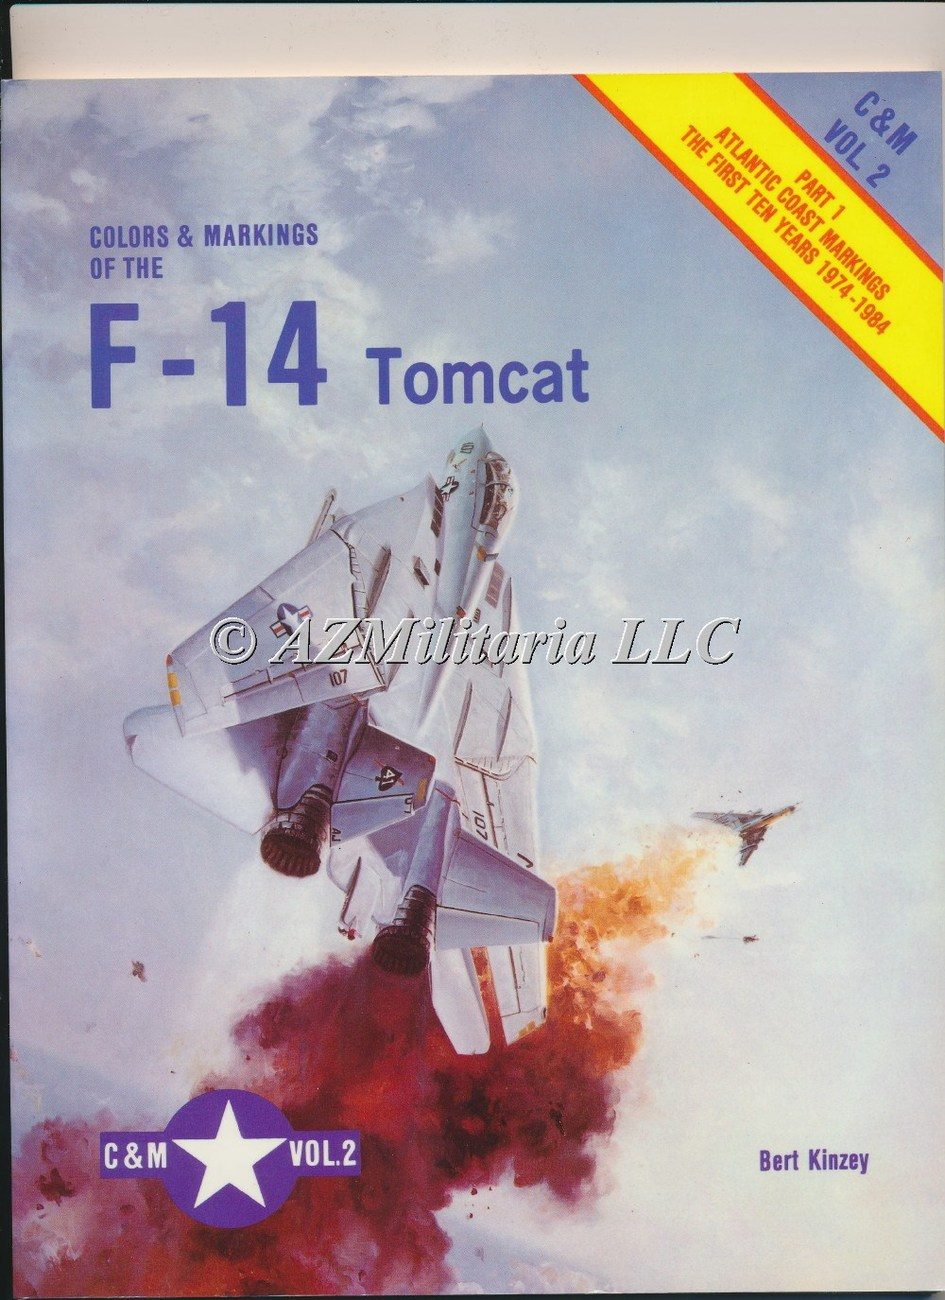 Colors & Markings Of The F-14 Tomcat C&M VOL 2